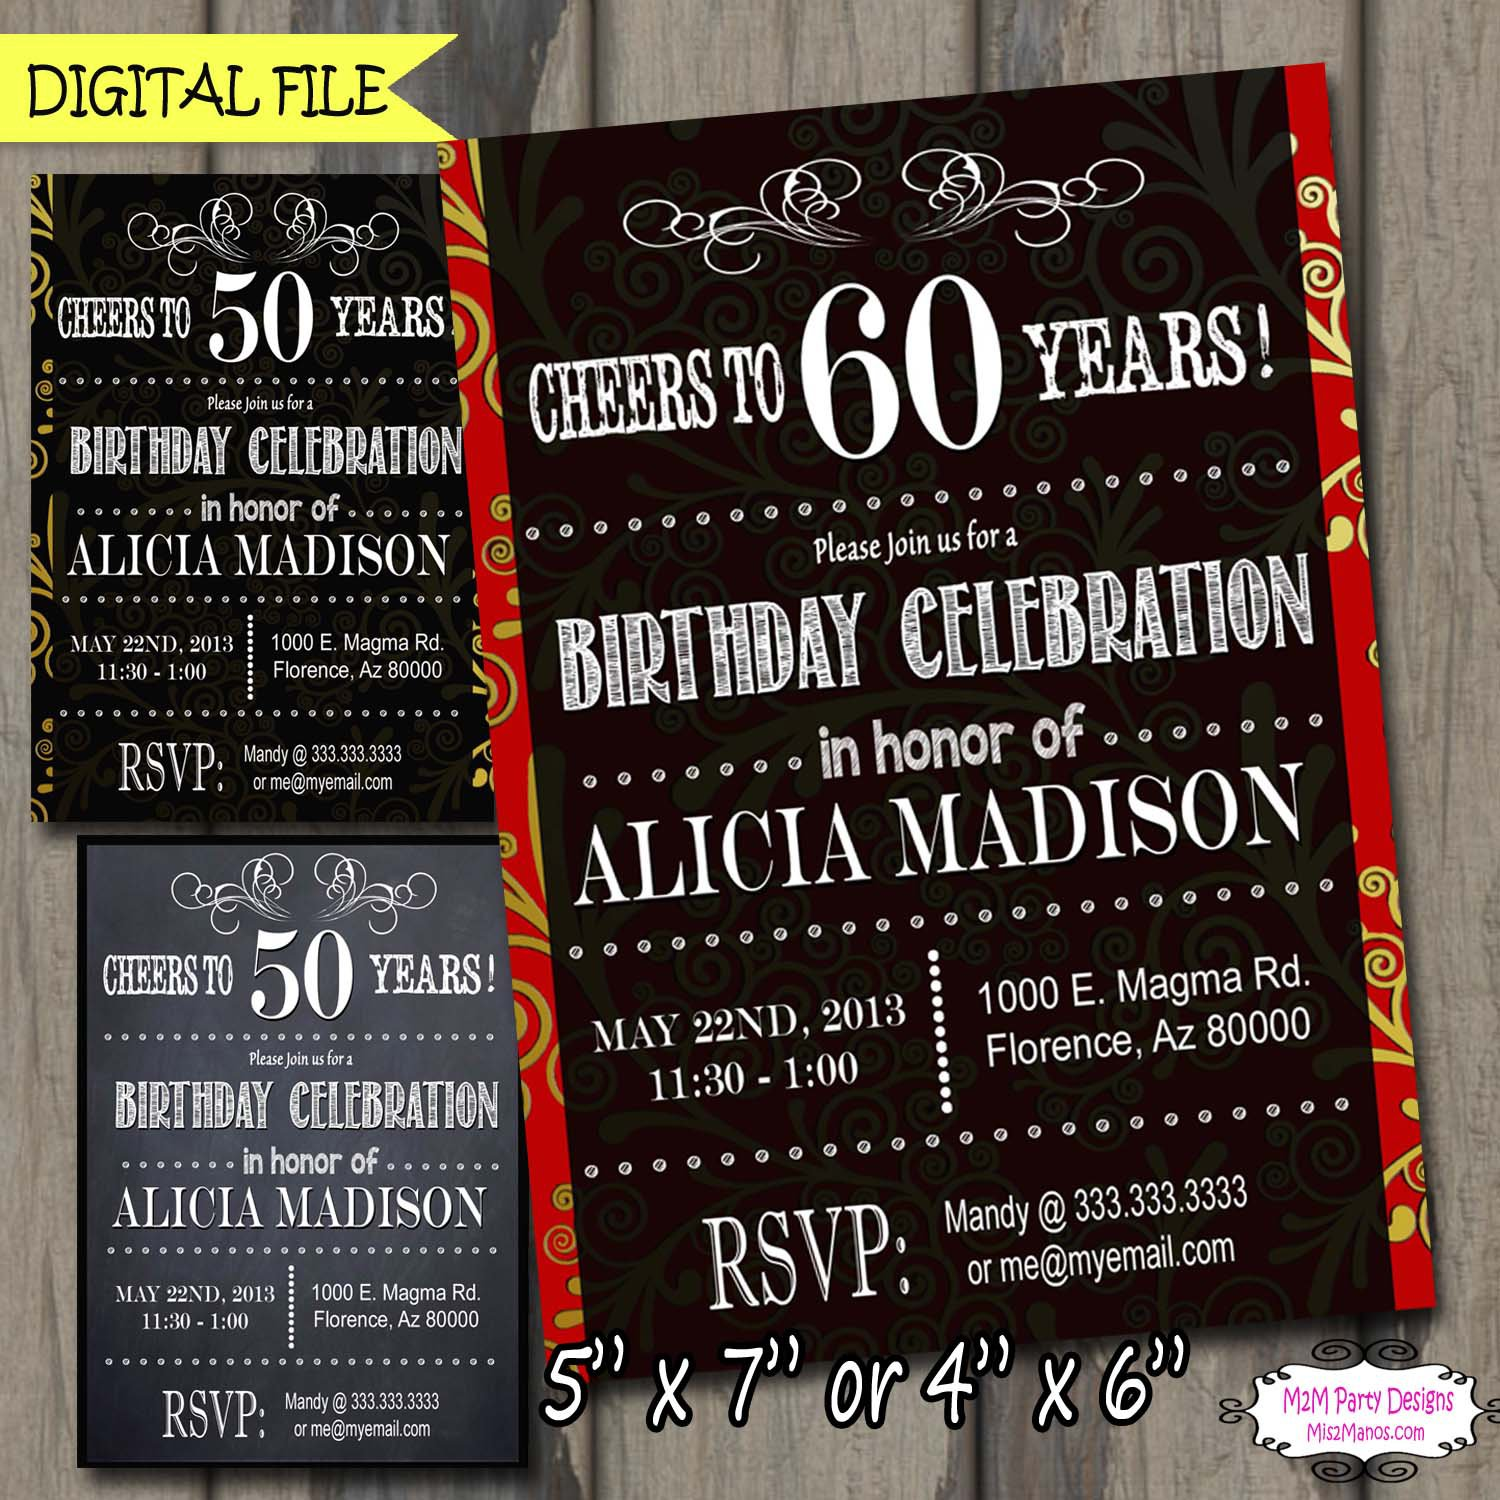 Cheers To 30 40 50 60 70 80 90 Years Adult Birthday Party Chalkboard Printable Invitations